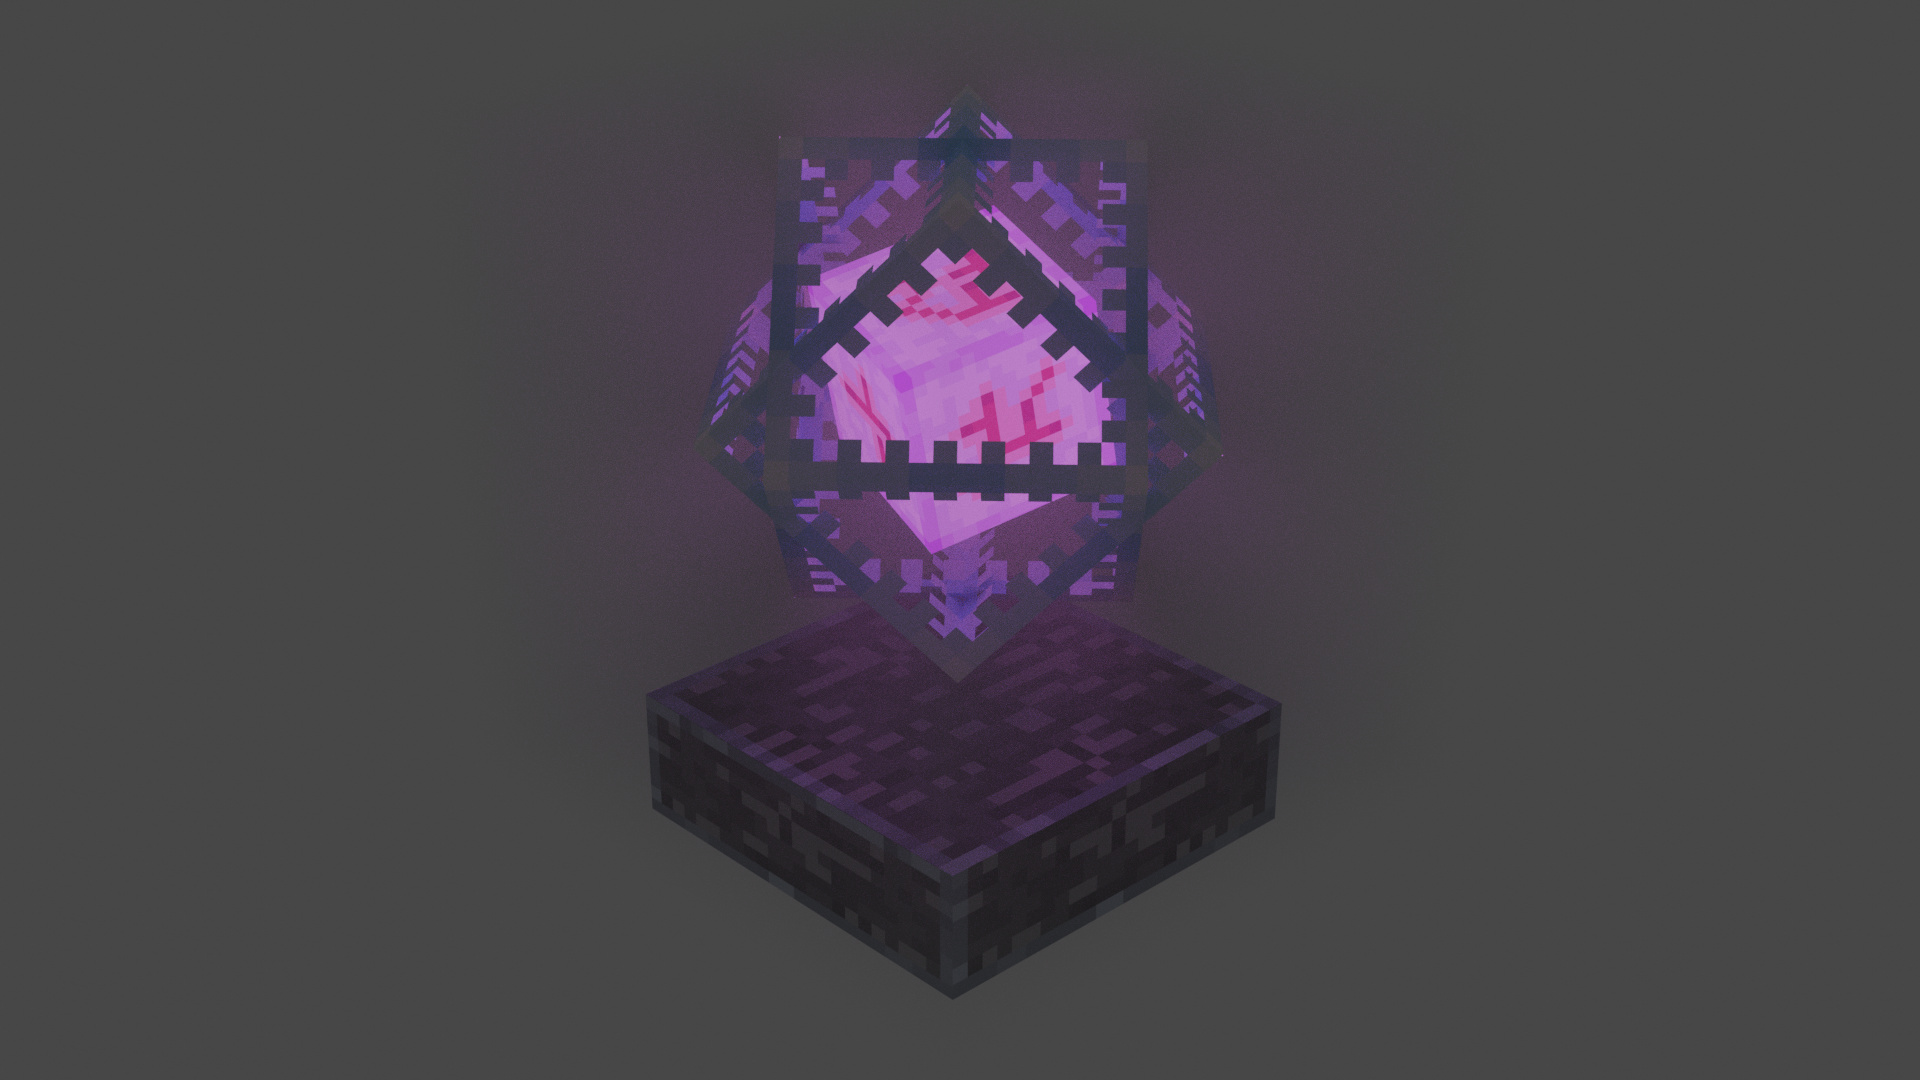 End Crystal From Minecraft - Finished Projects - Blender Artists